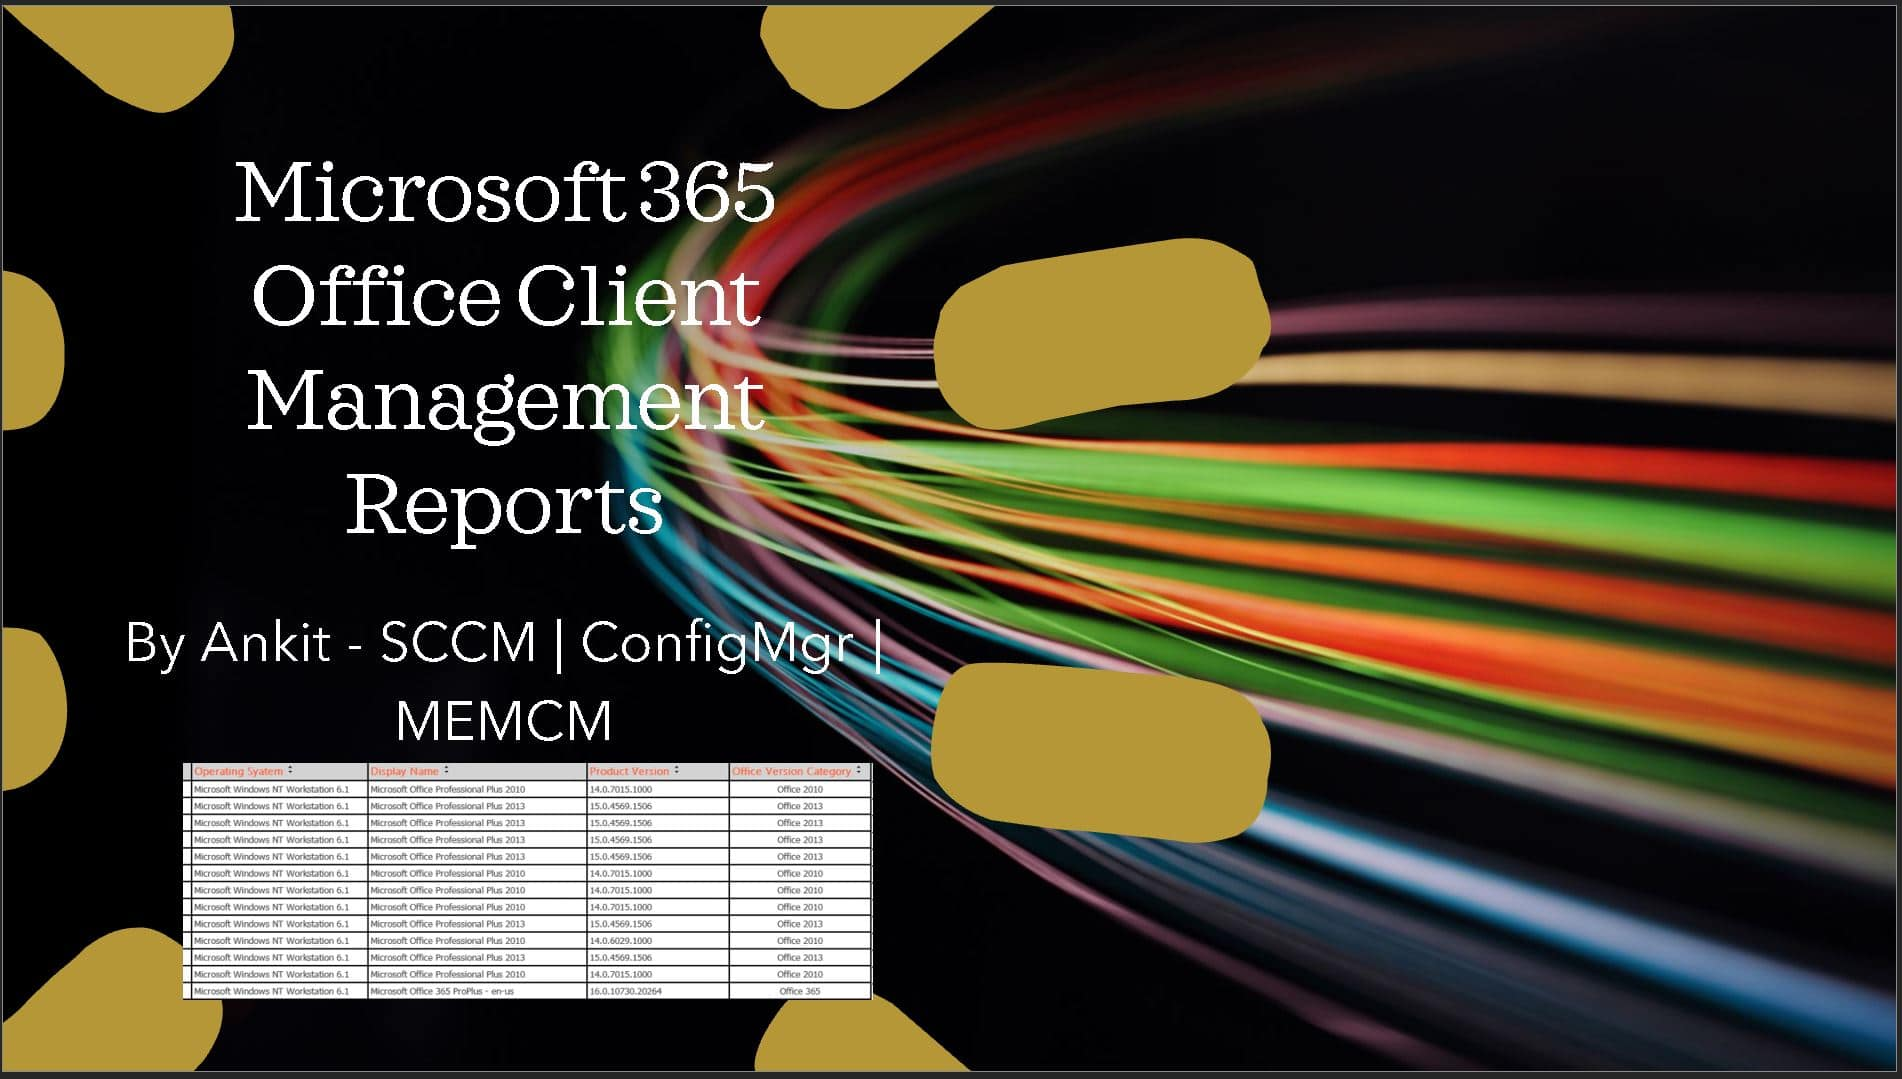 Microsoft 365 Office Client Management Reports SCCM ConfigMgr Custom Reports